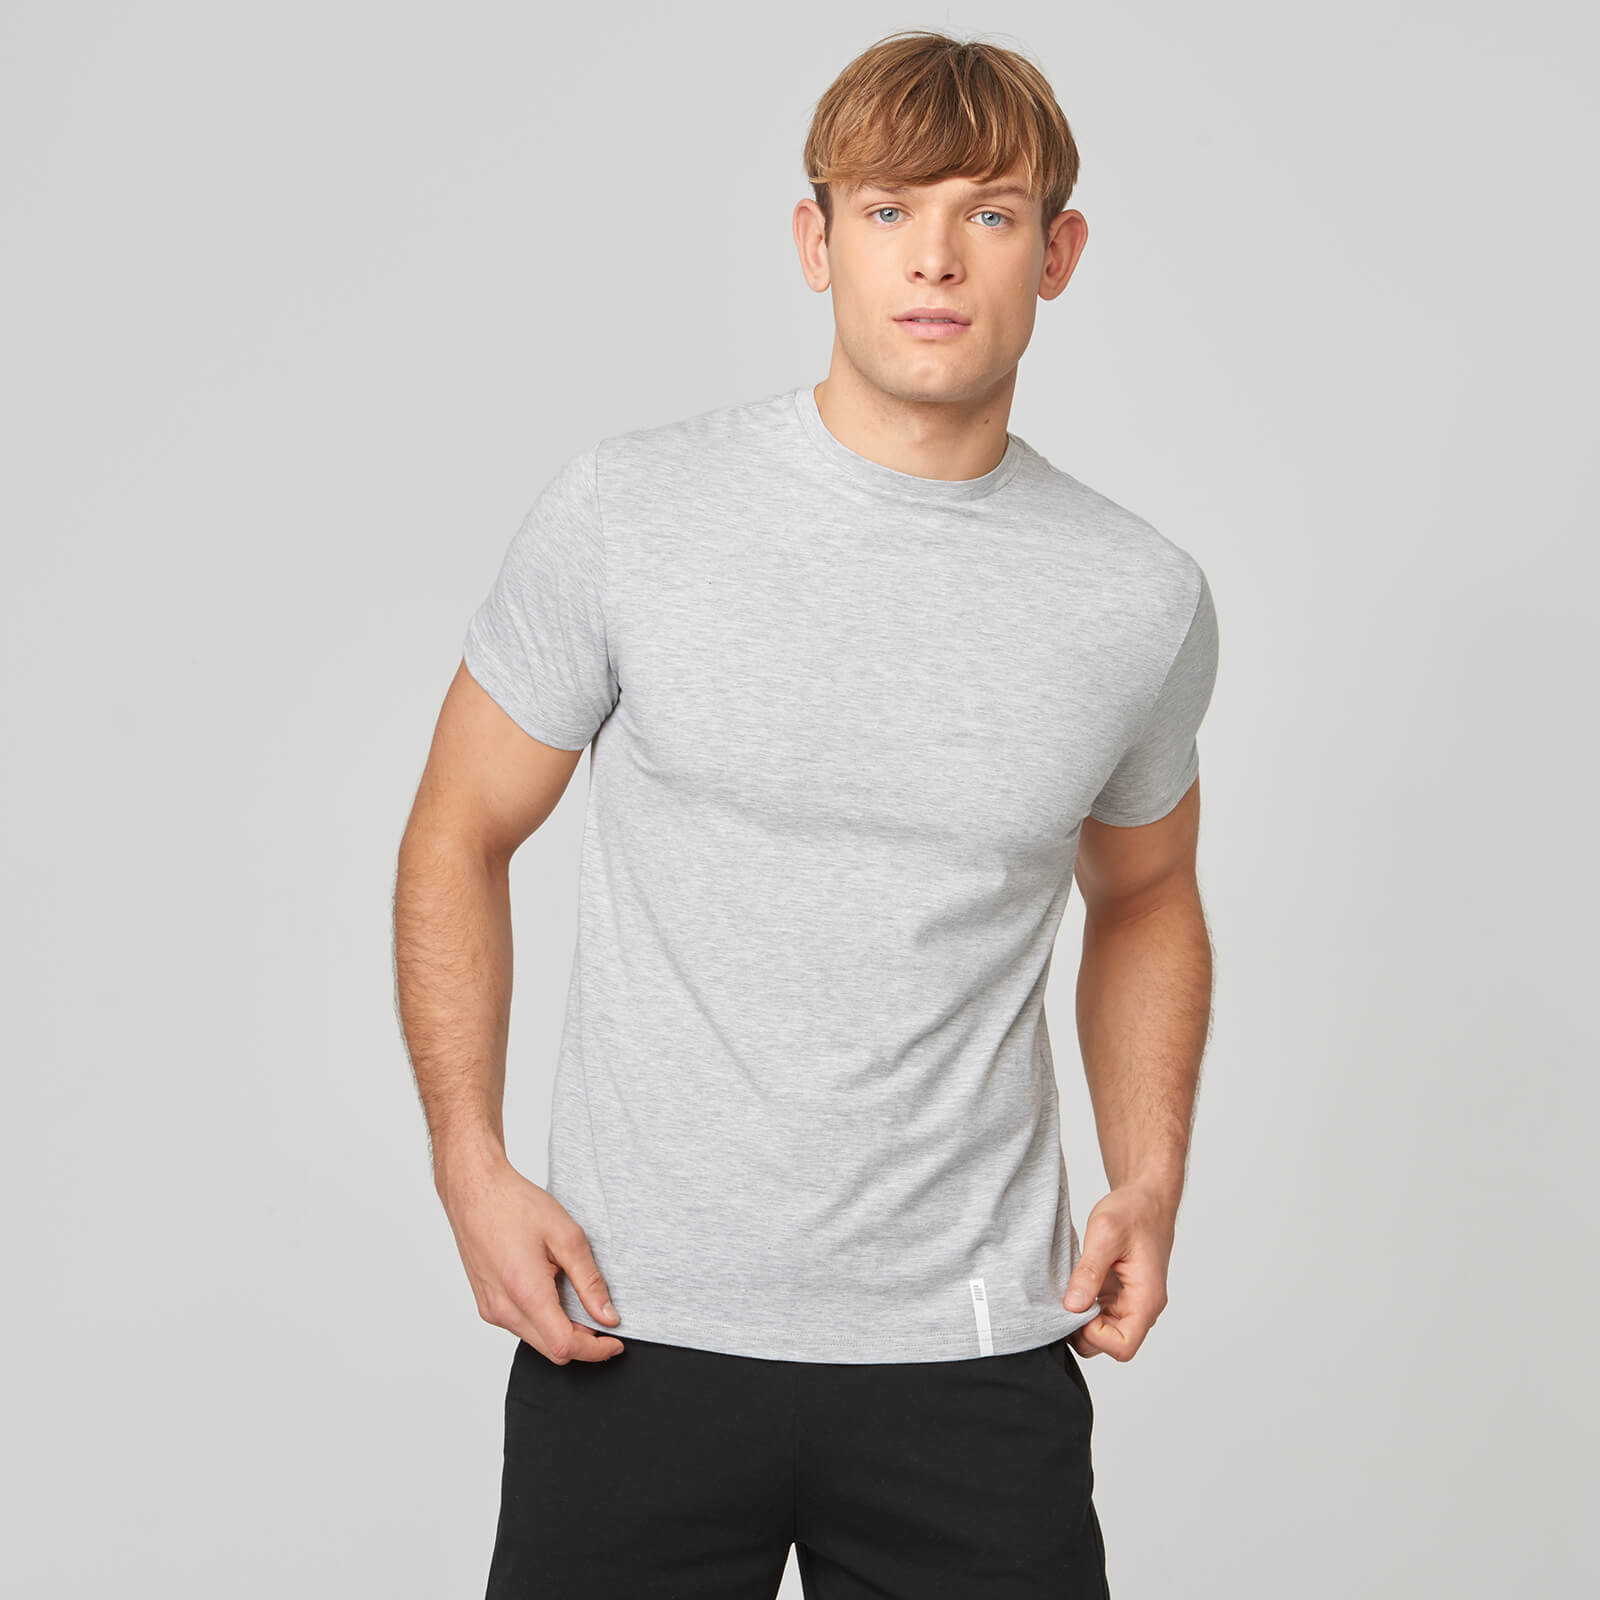 Myprotein Luxe Classic Crew T-Shirt - Grey Marl - XL